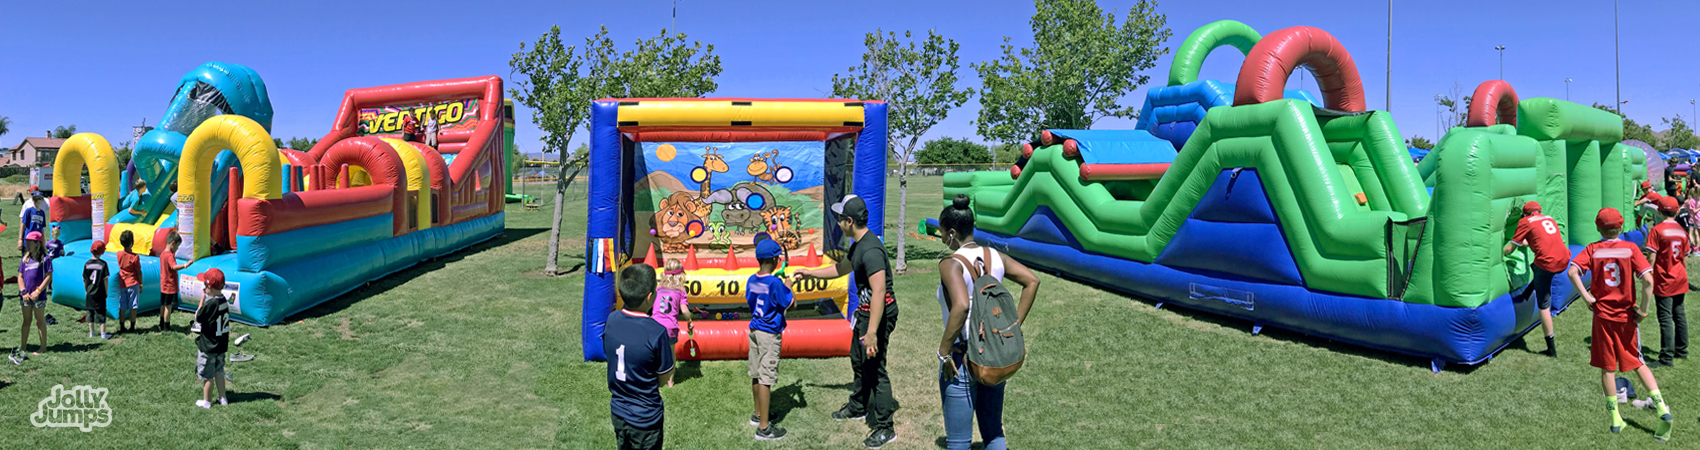 Jolly Jumps Bounce House Rentals Water Slide Rentals